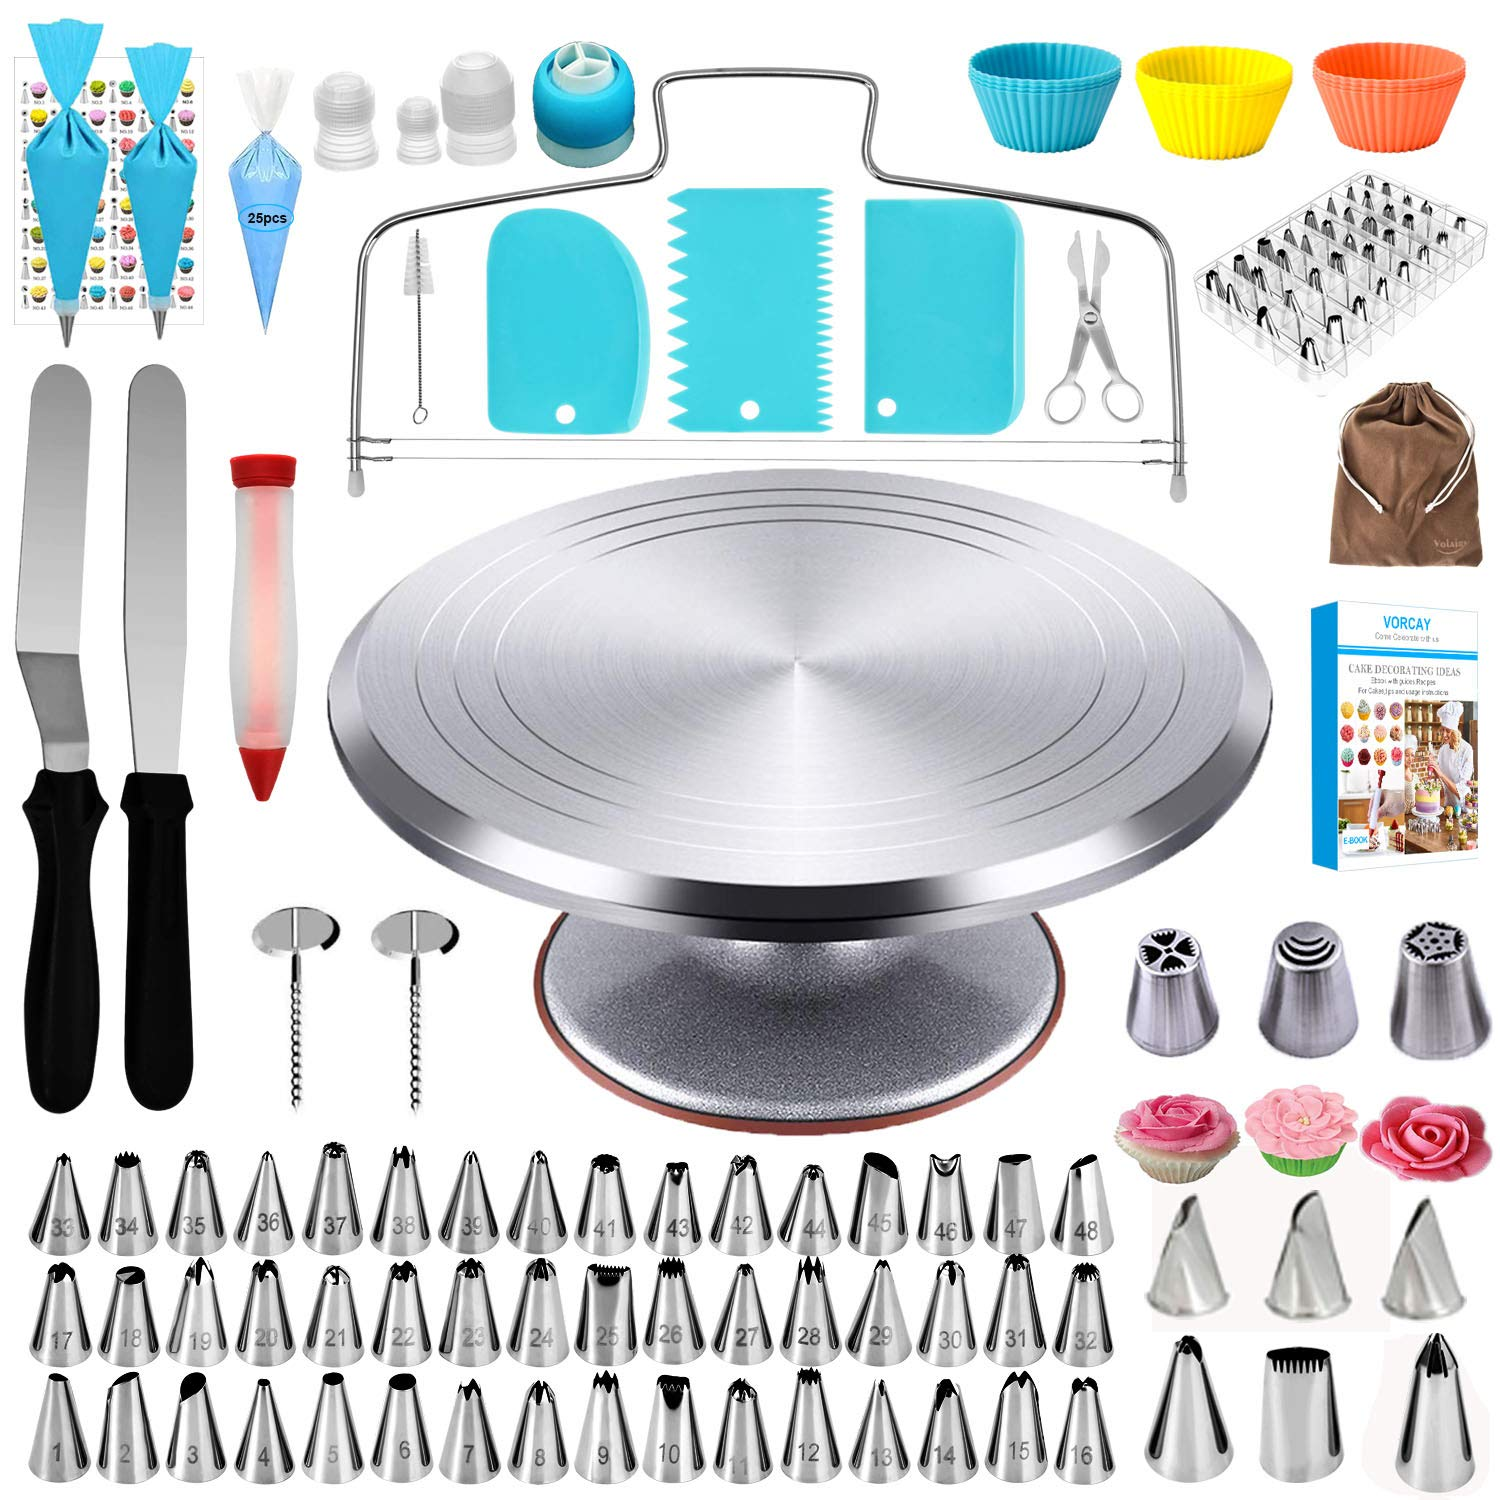 Perfet for DIY Baking Cake Decorating,Acrylic Swivel Lazy Susan Square QBOSO Rotating Cookie Stand Cupcake Decorating Turntable